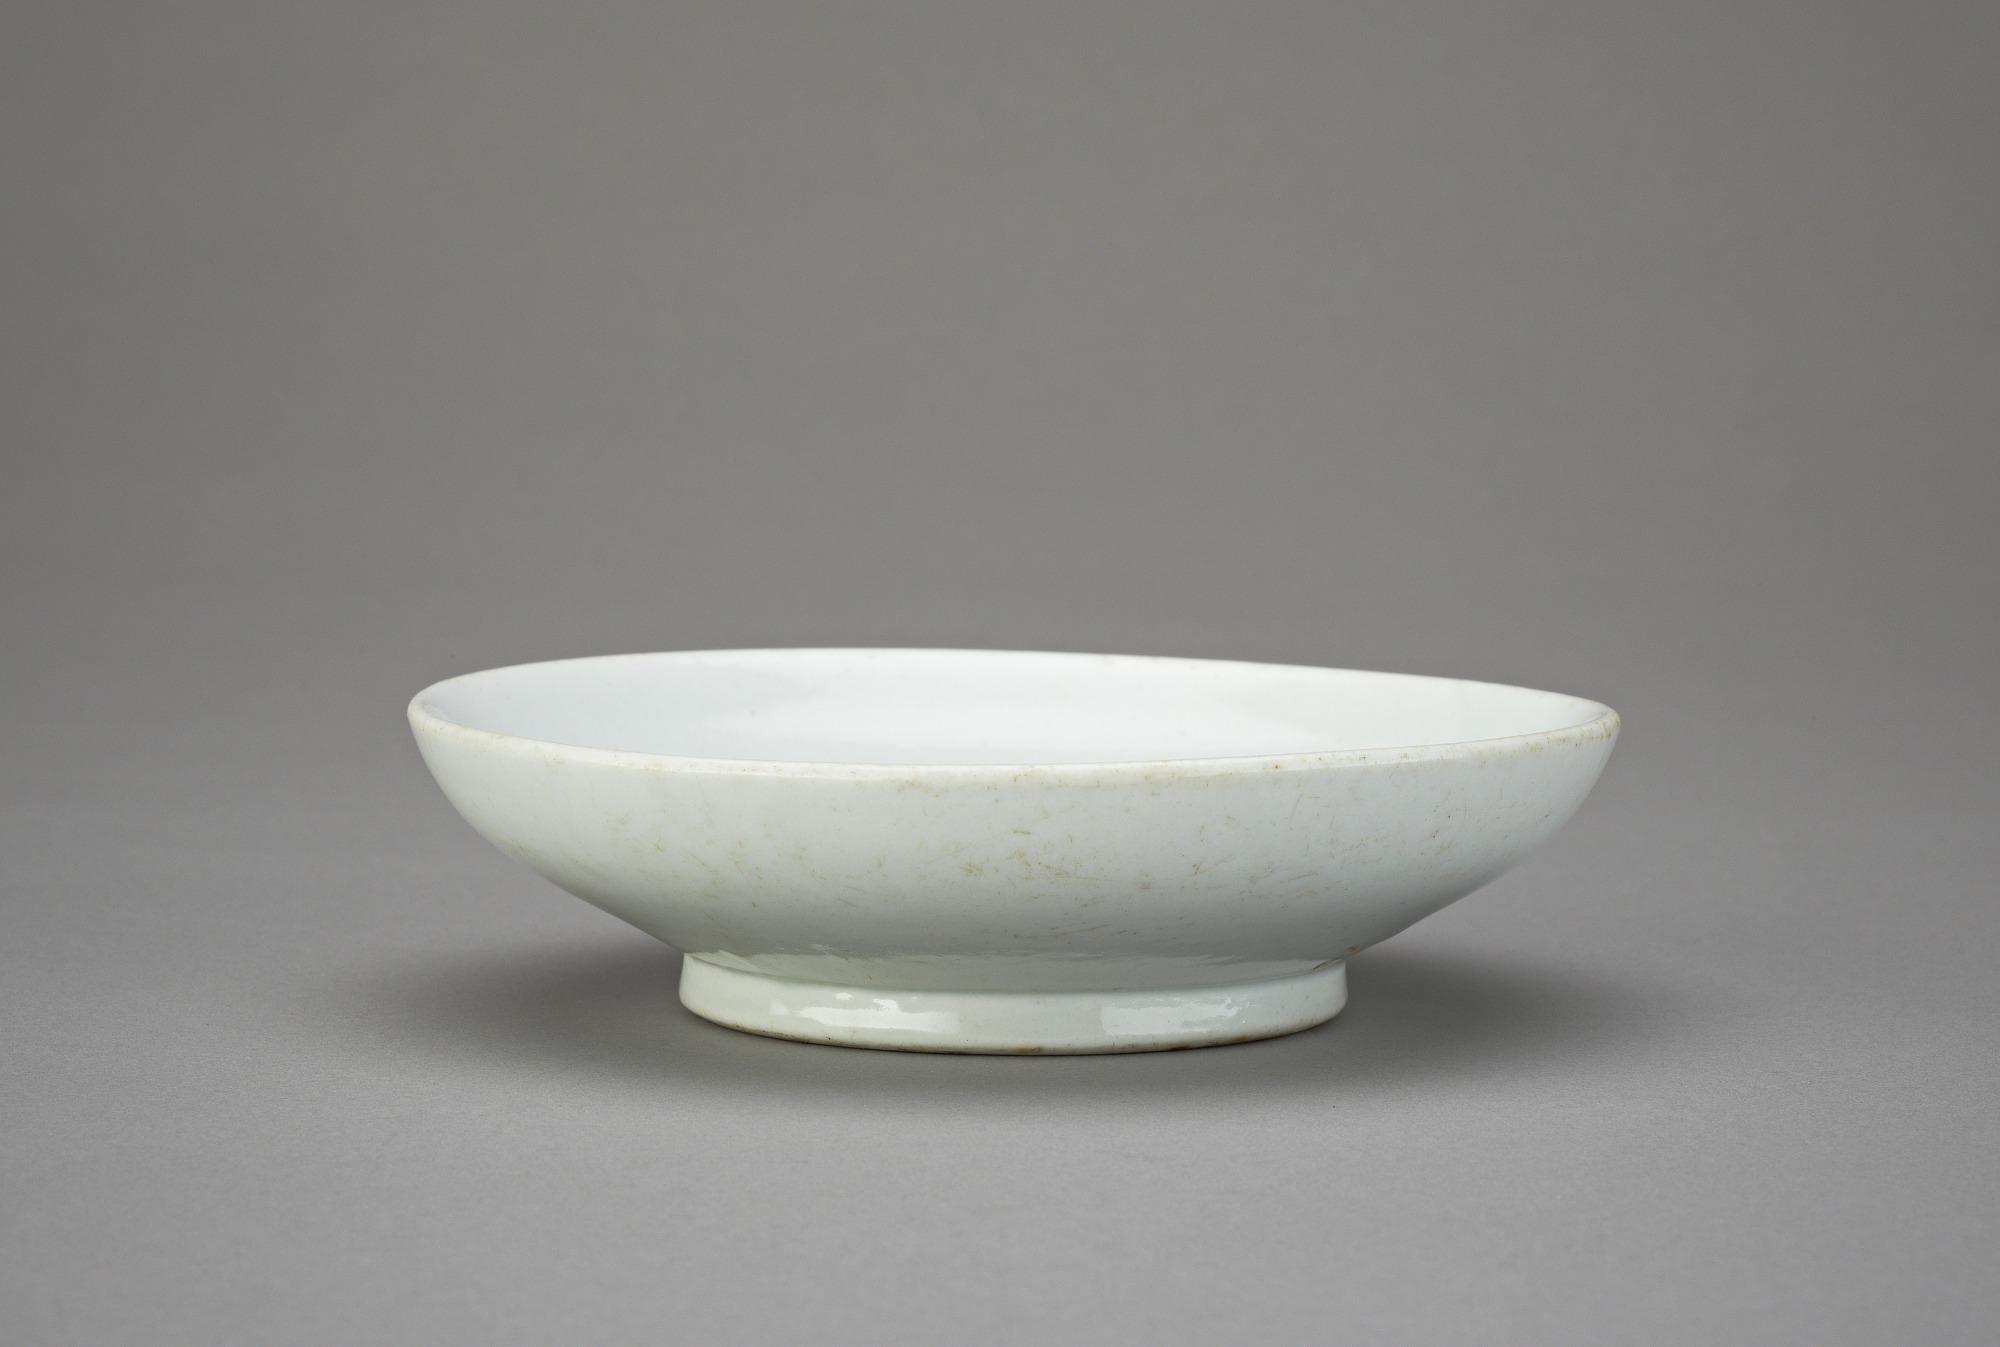 Dish with inventory inscription dated 1832, profile